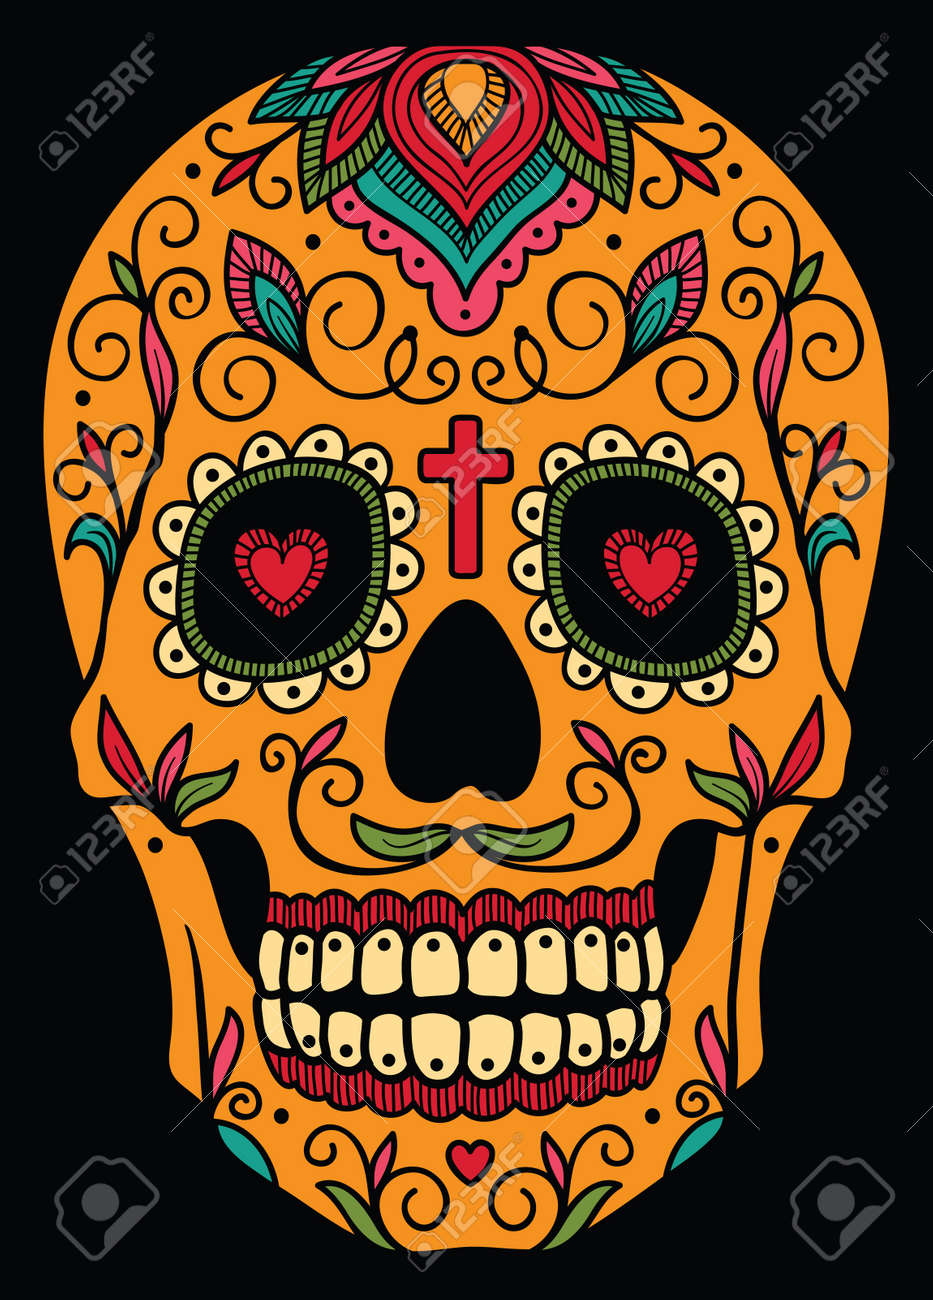 Mexican Candy Skull - Image Wallpaper Database